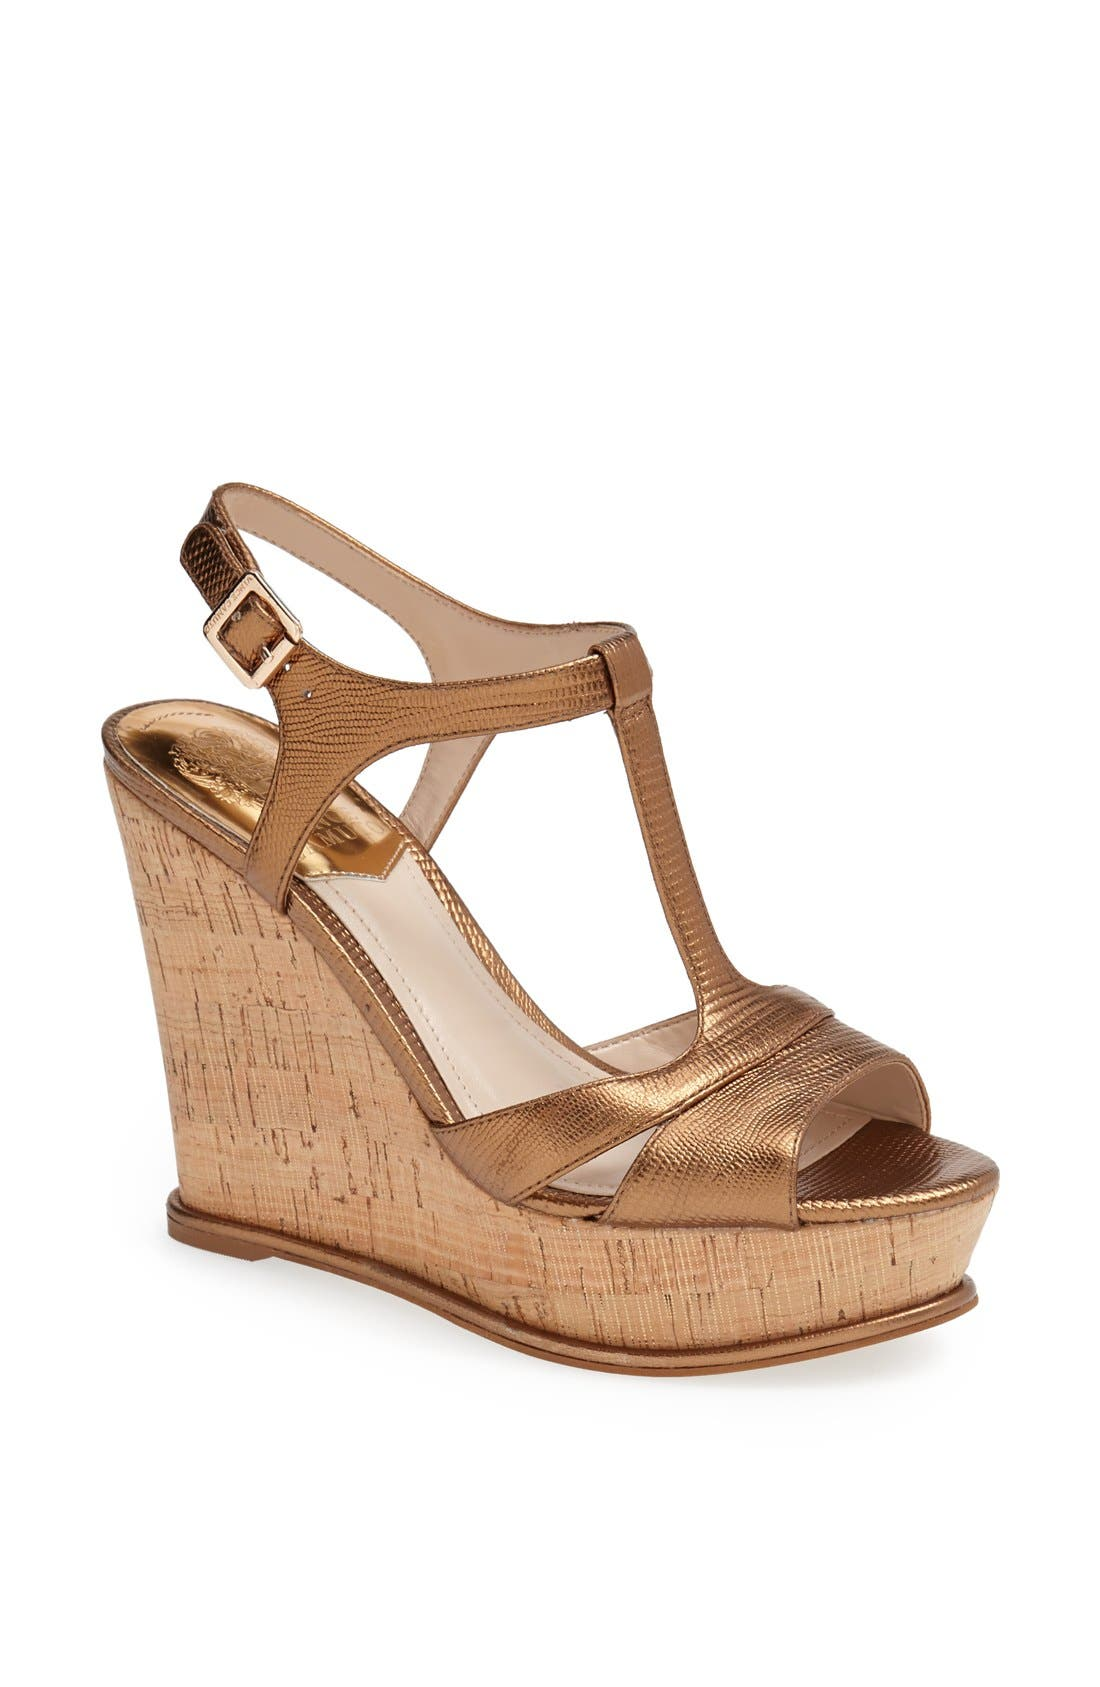 Main Image - Vince Camuto 'Inslo' Wedge Sandal